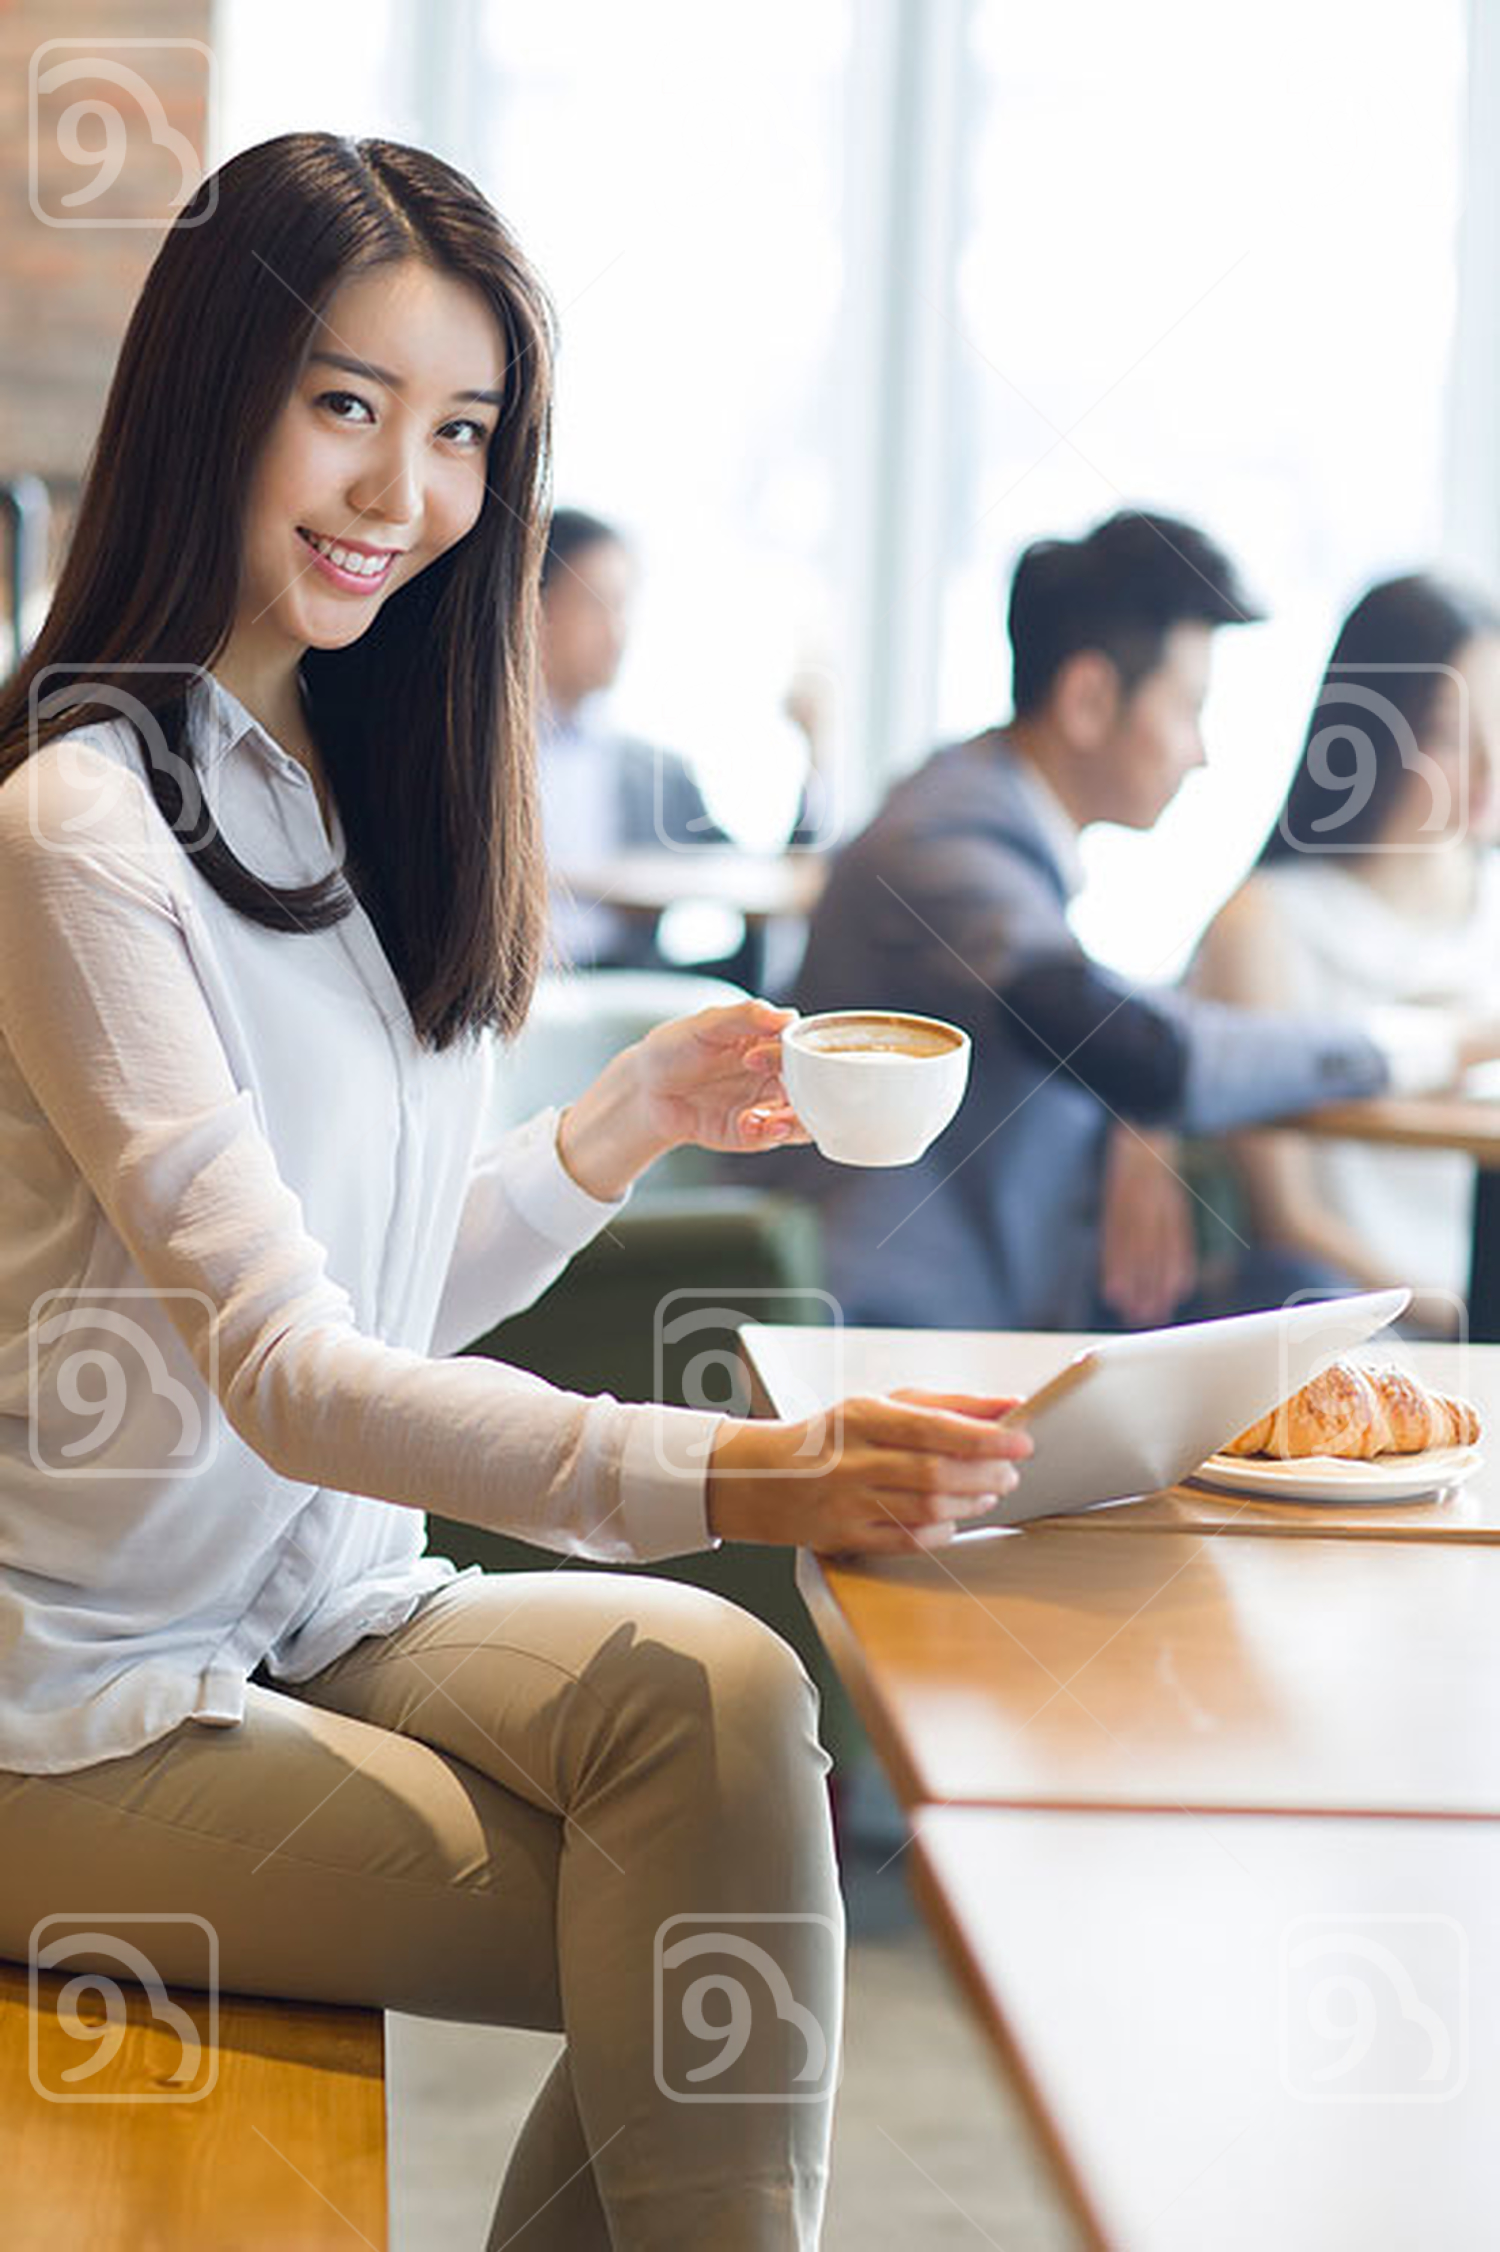 Young Chinese woman using digital tablet in café